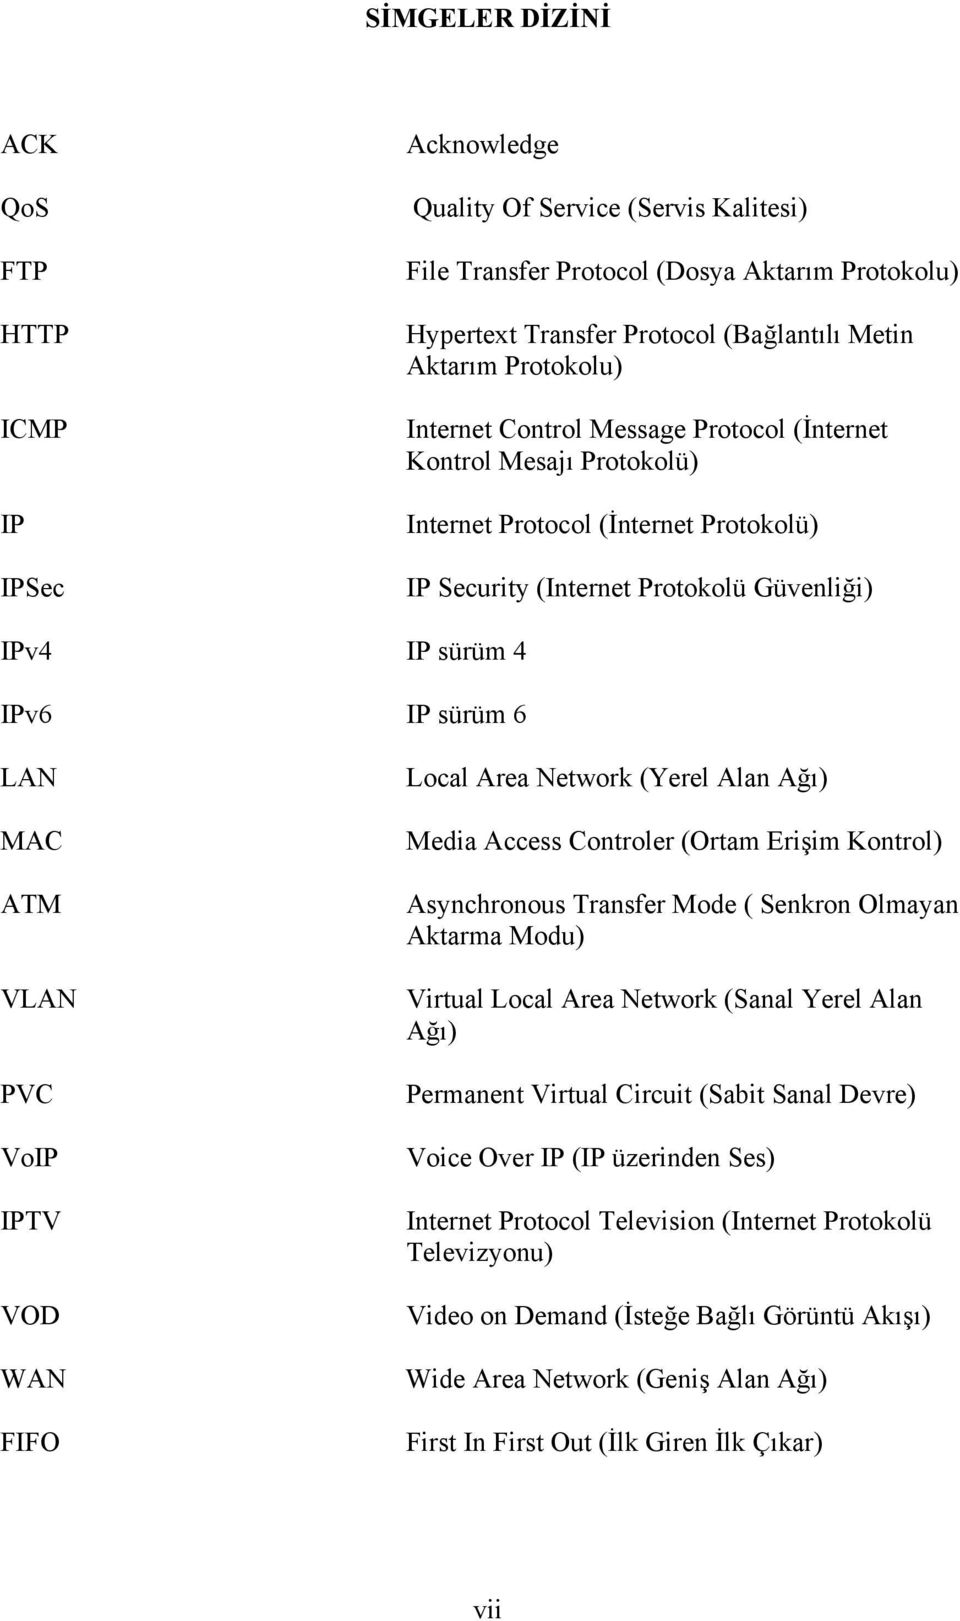 MAC ATM VLAN PVC VoIP IPTV VOD WAN FIFO Local Area Network (Yerel Alan Ağı) Media Access Controler (Ortam Erişim Kontrol) Asynchronous Transfer Mode ( Senkron Olmayan Aktarma Modu) Virtual Local Area